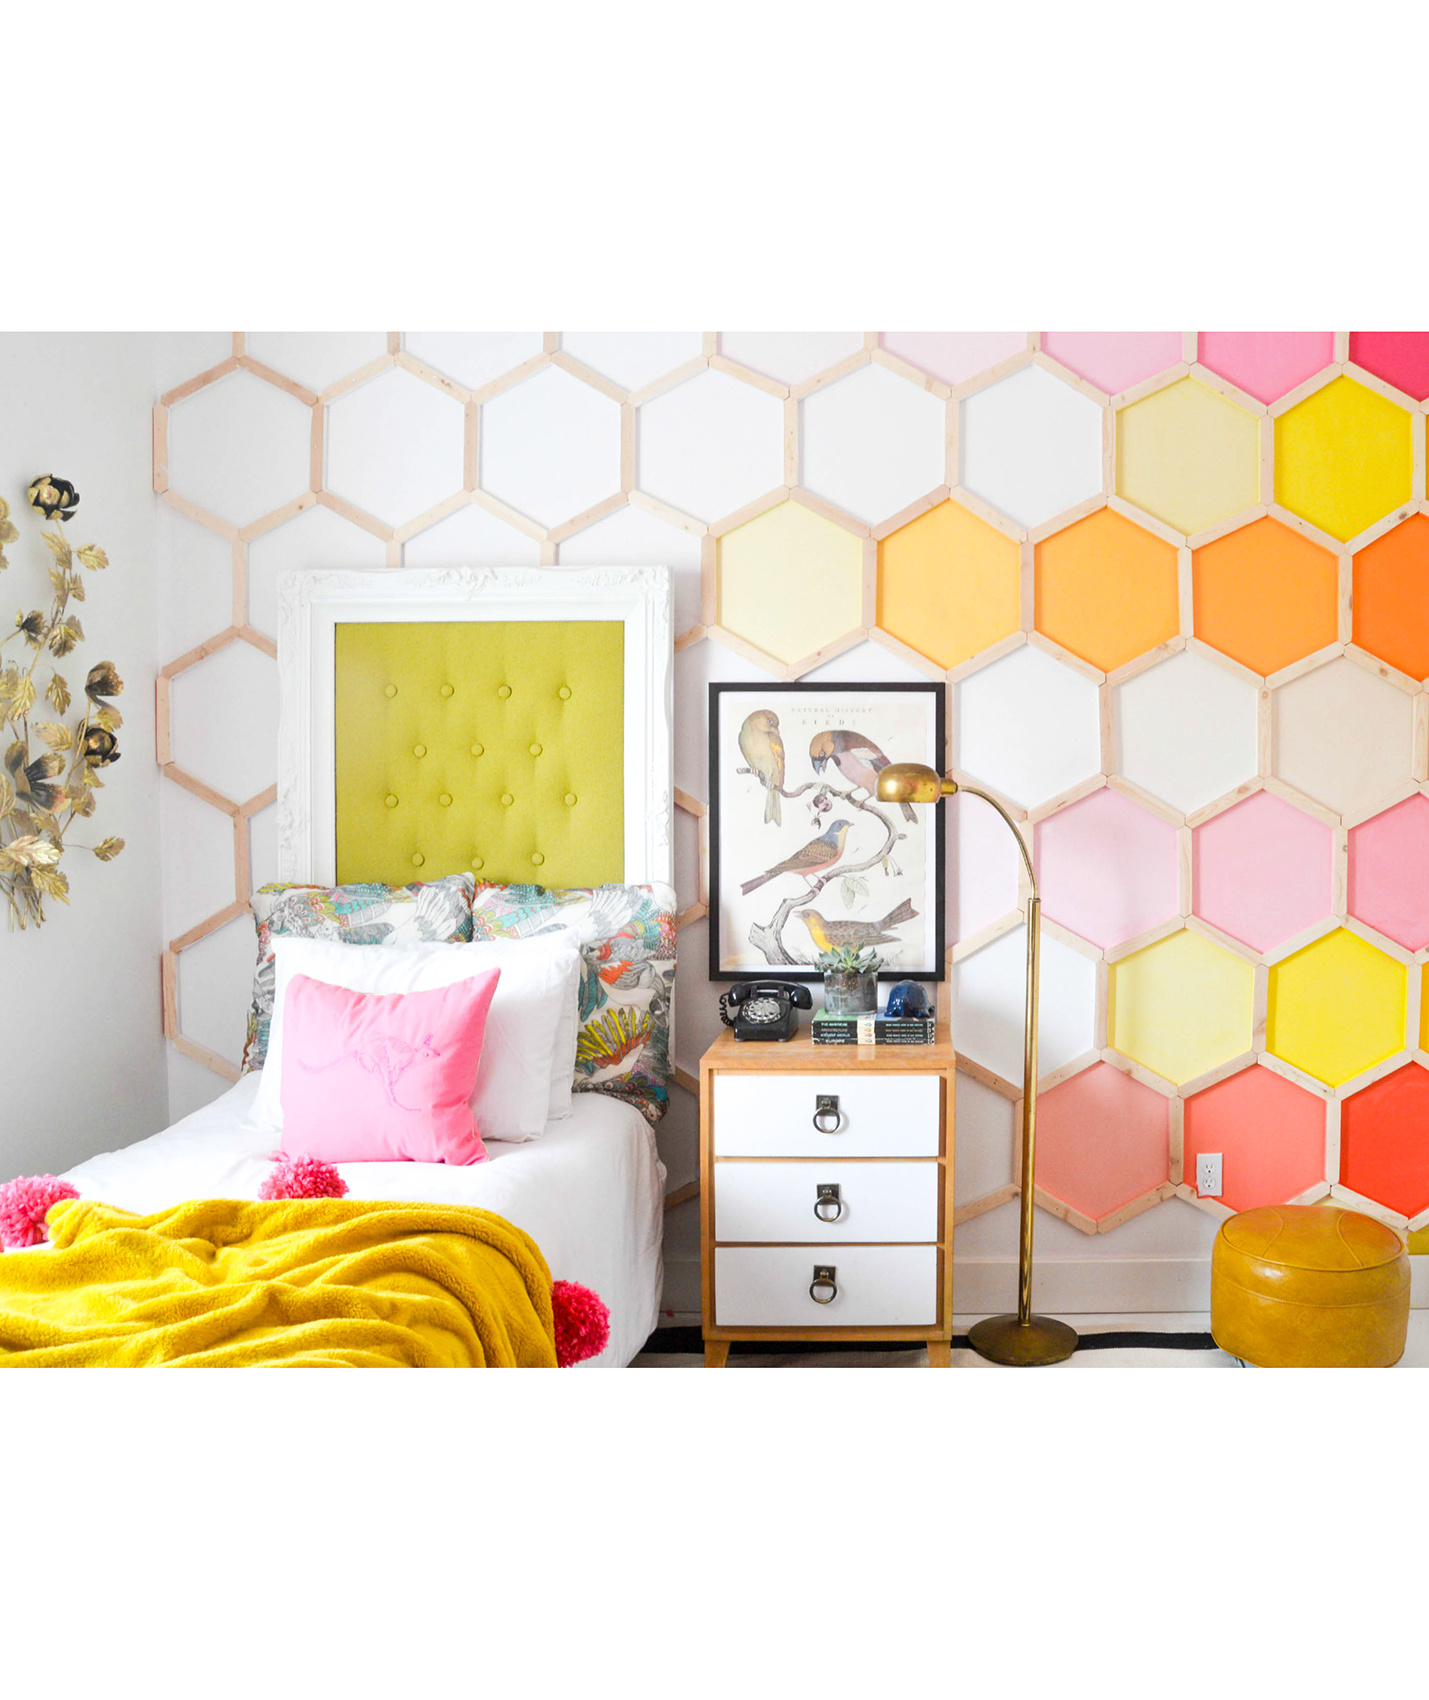 Girl's room with colorful hexagon pattern on wall